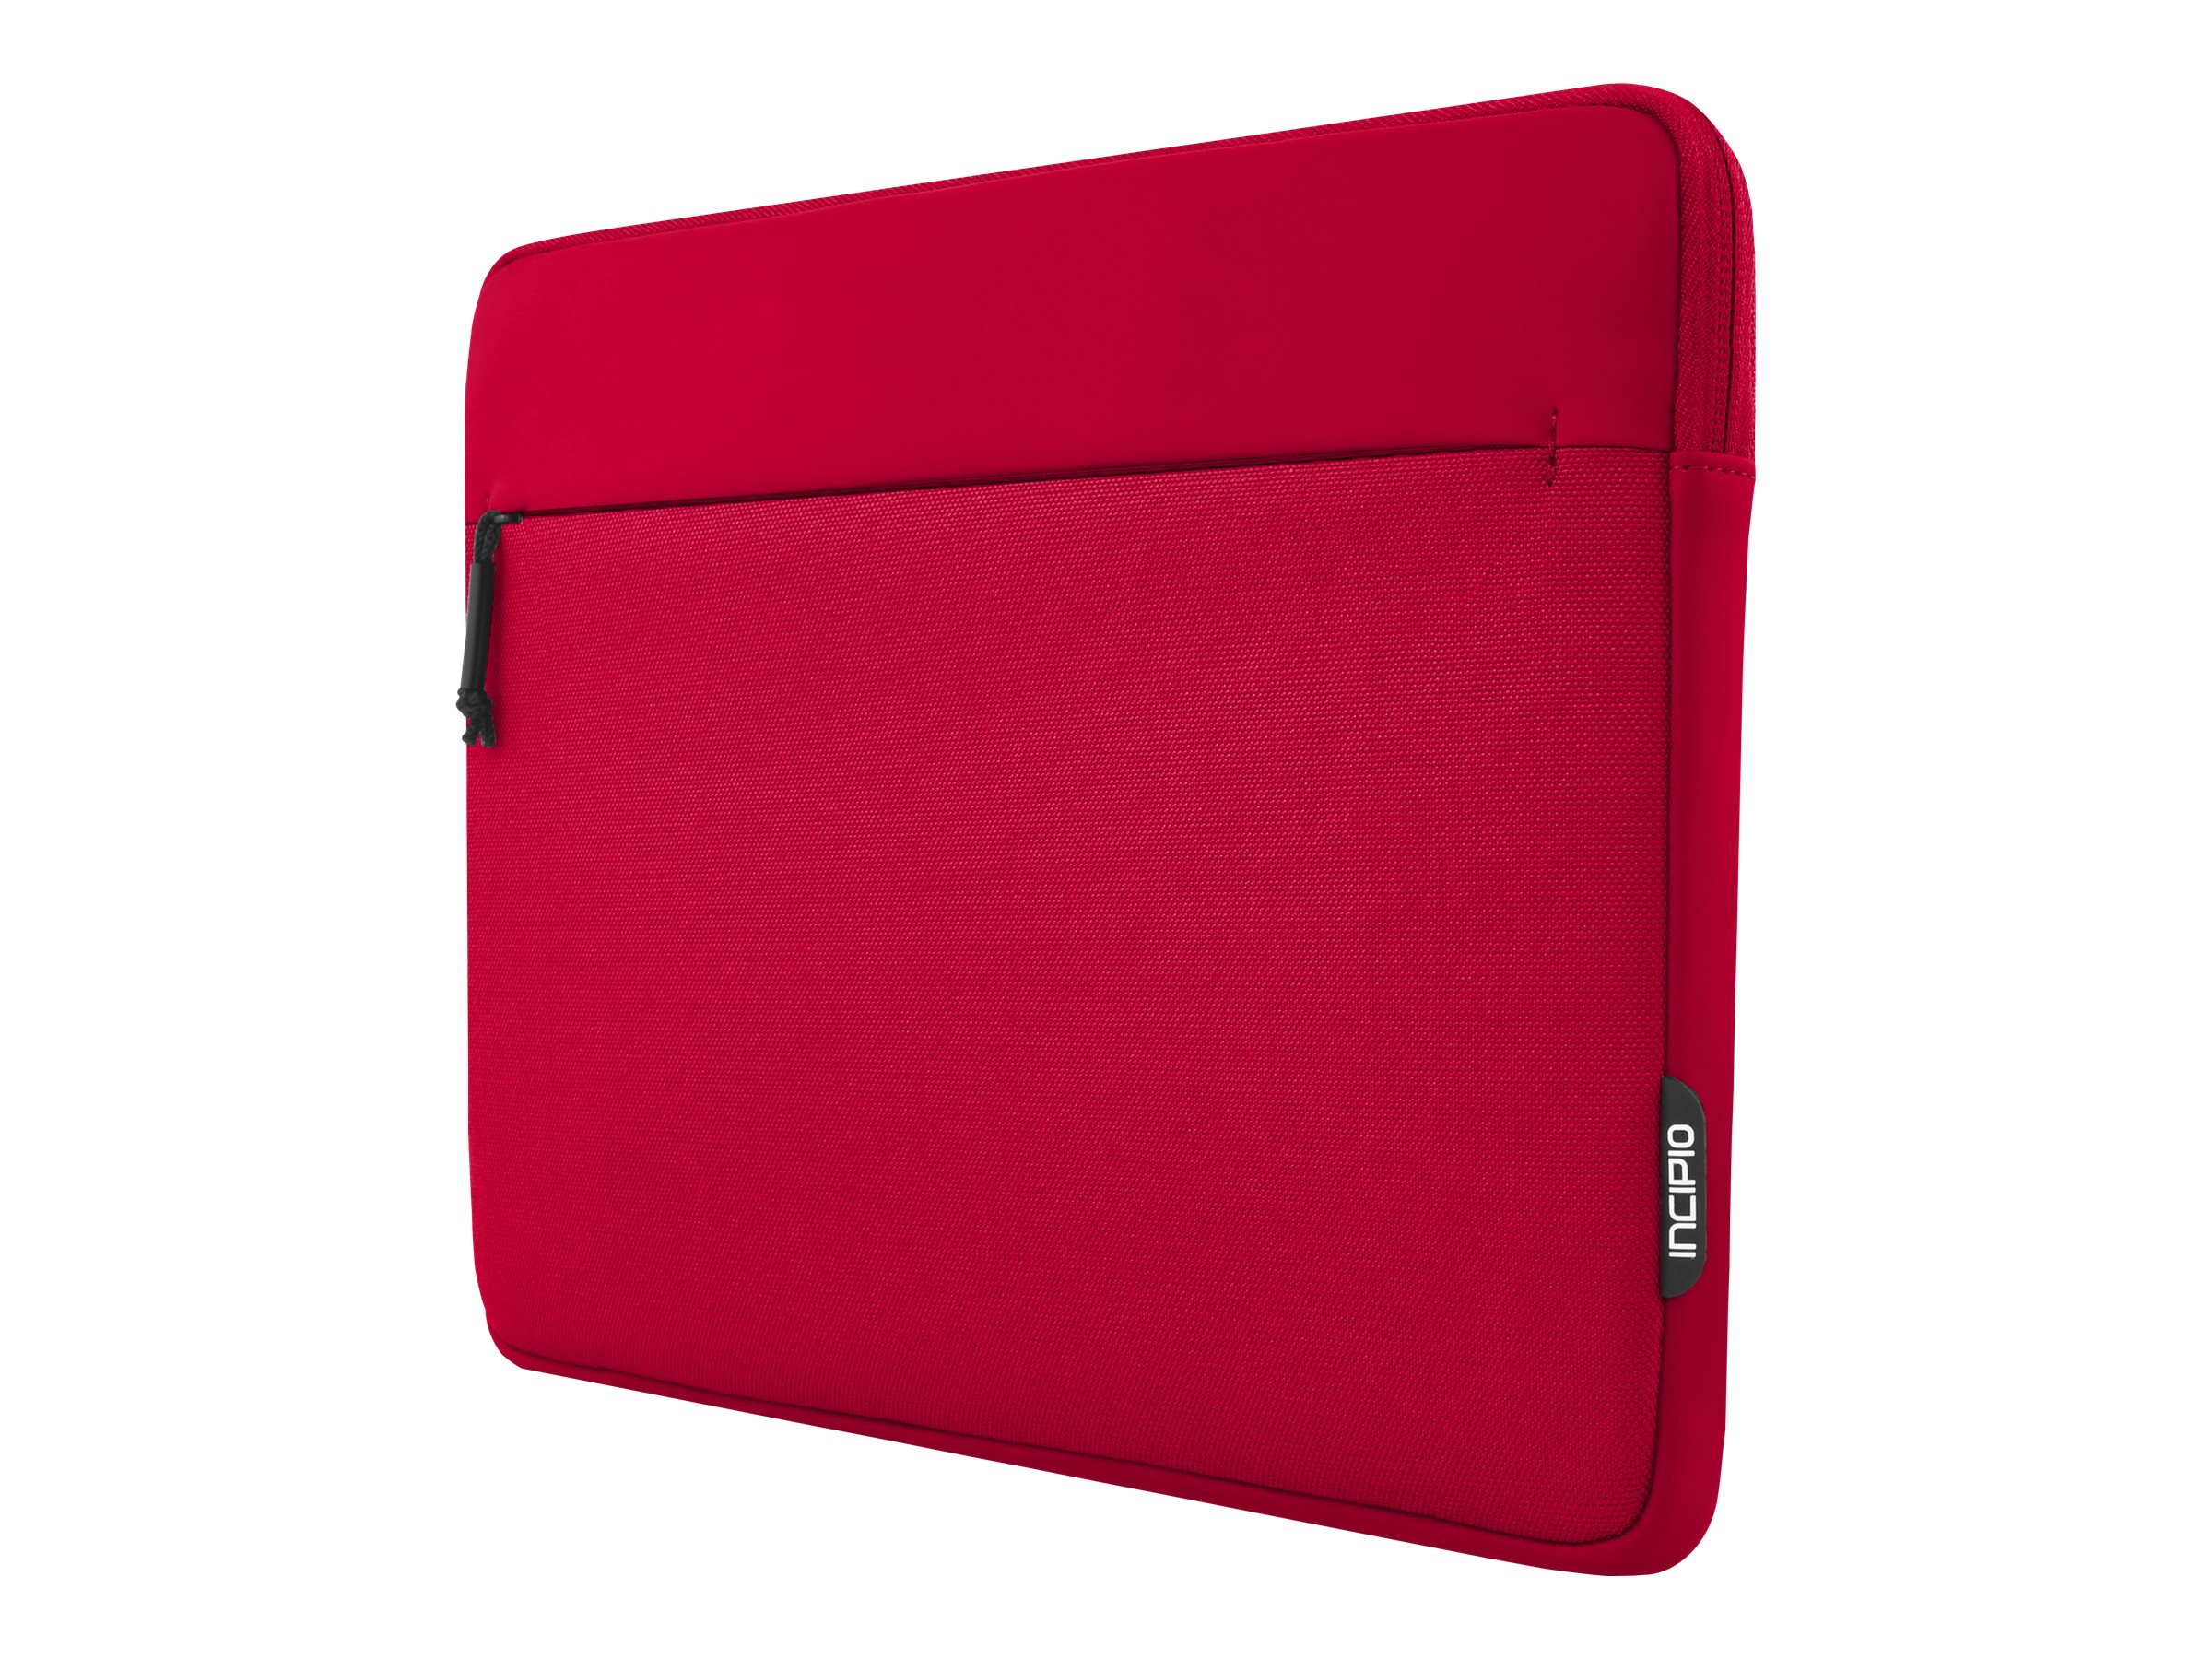 Incipio Truman Protective Padded Sleeve for iPad Pro 12.9, Red